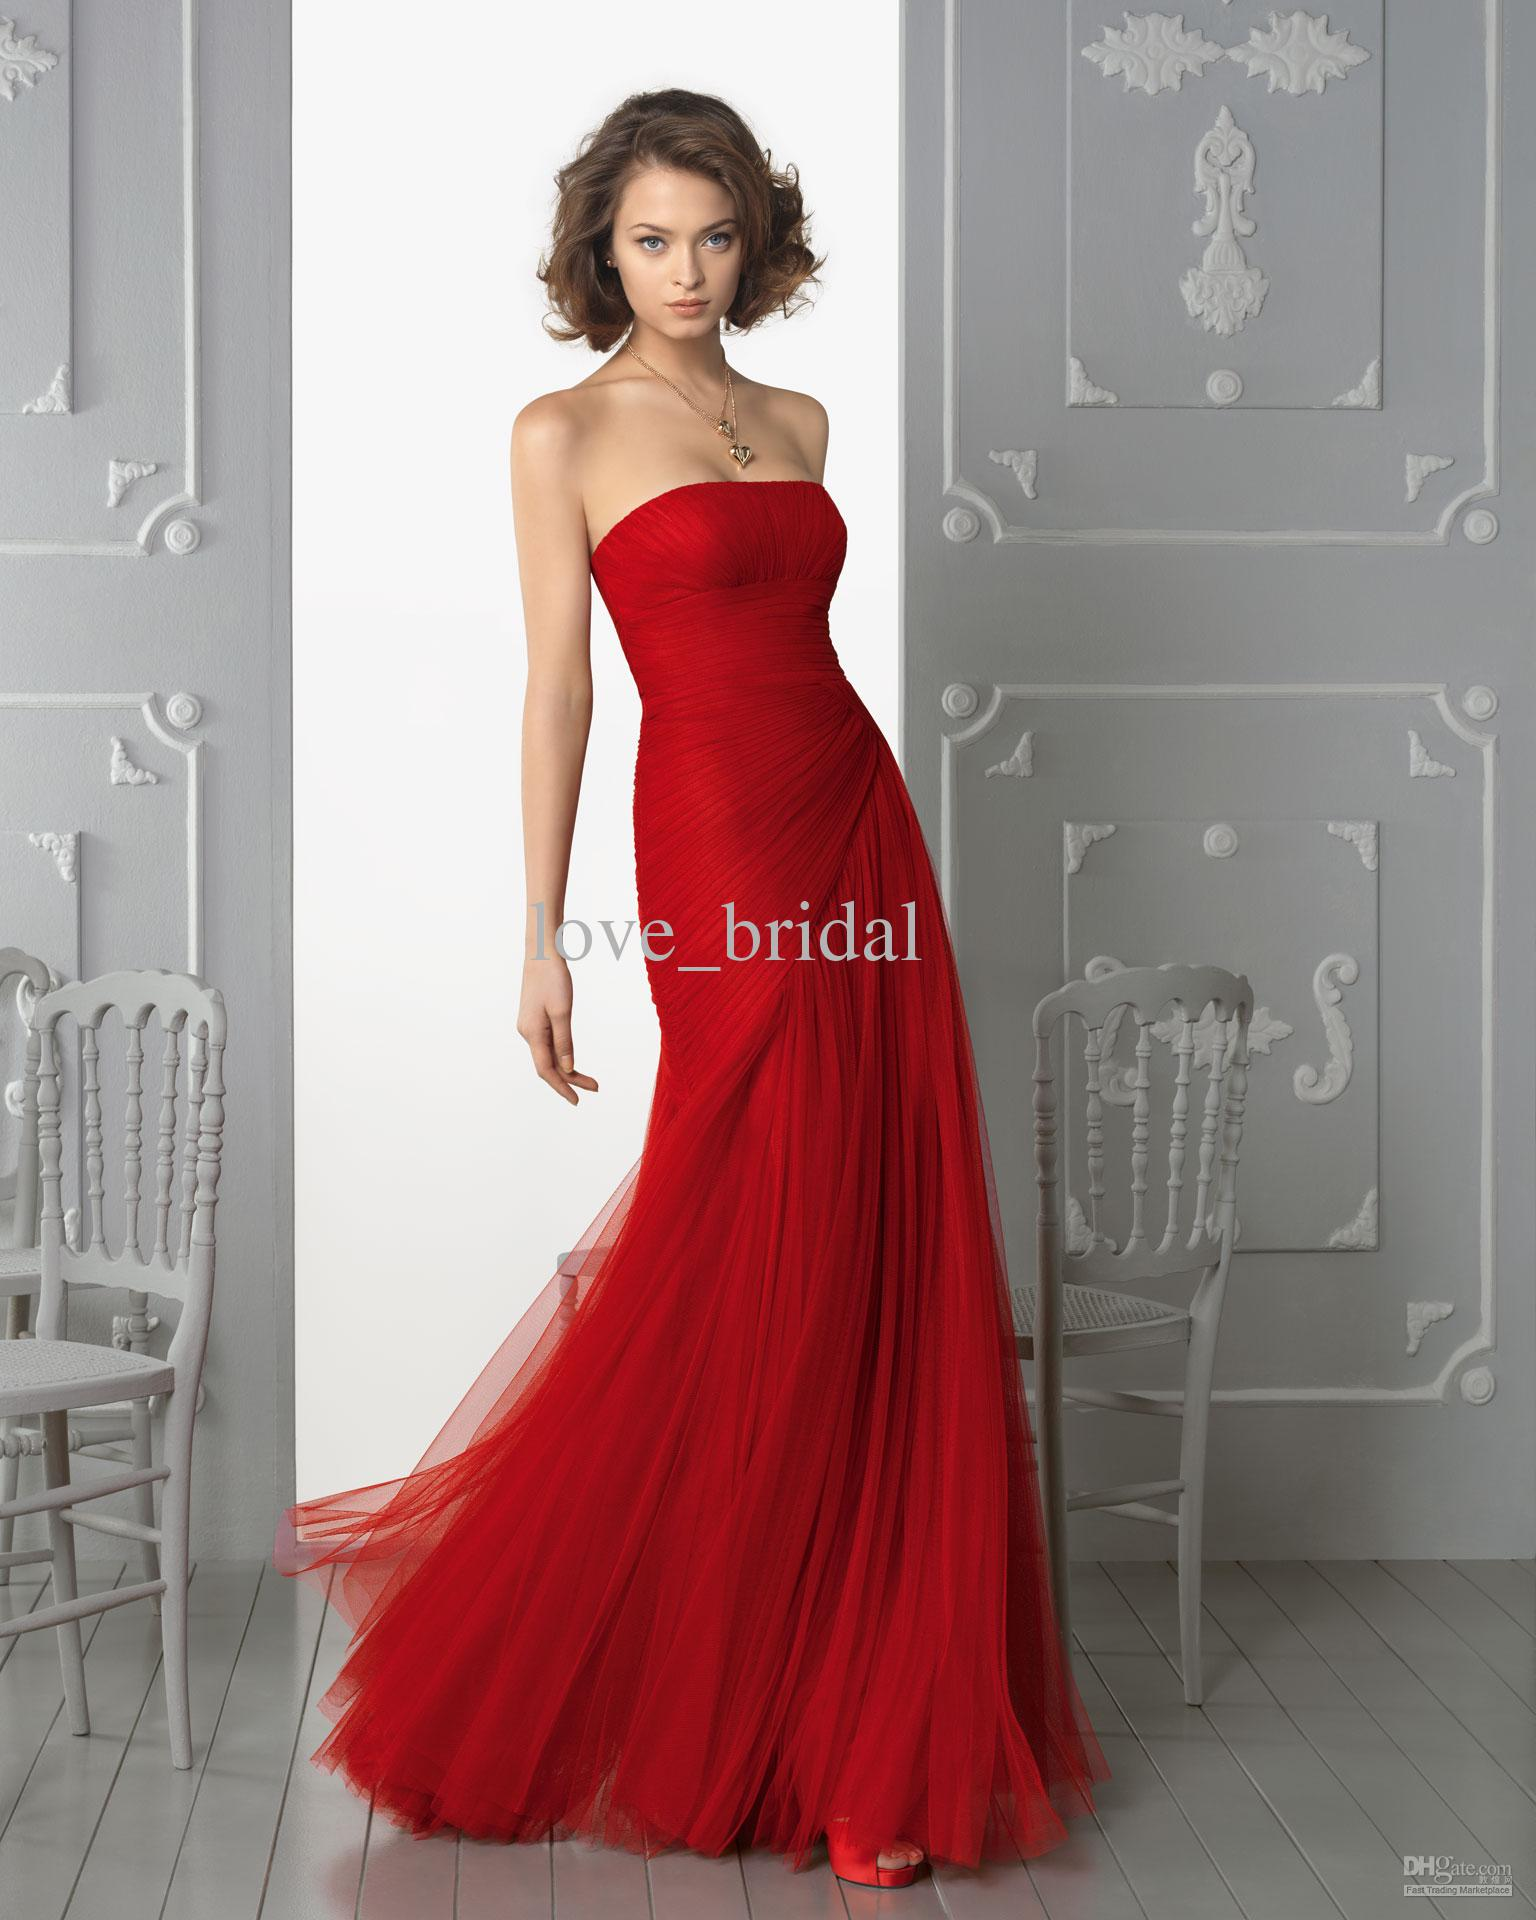 2013 bridesmaid dresses cheap custom made a line strapless pleats 2013 bridesmaid dresses cheap custom made a line strapless pleats floor length red tulle long ombrellifo Image collections